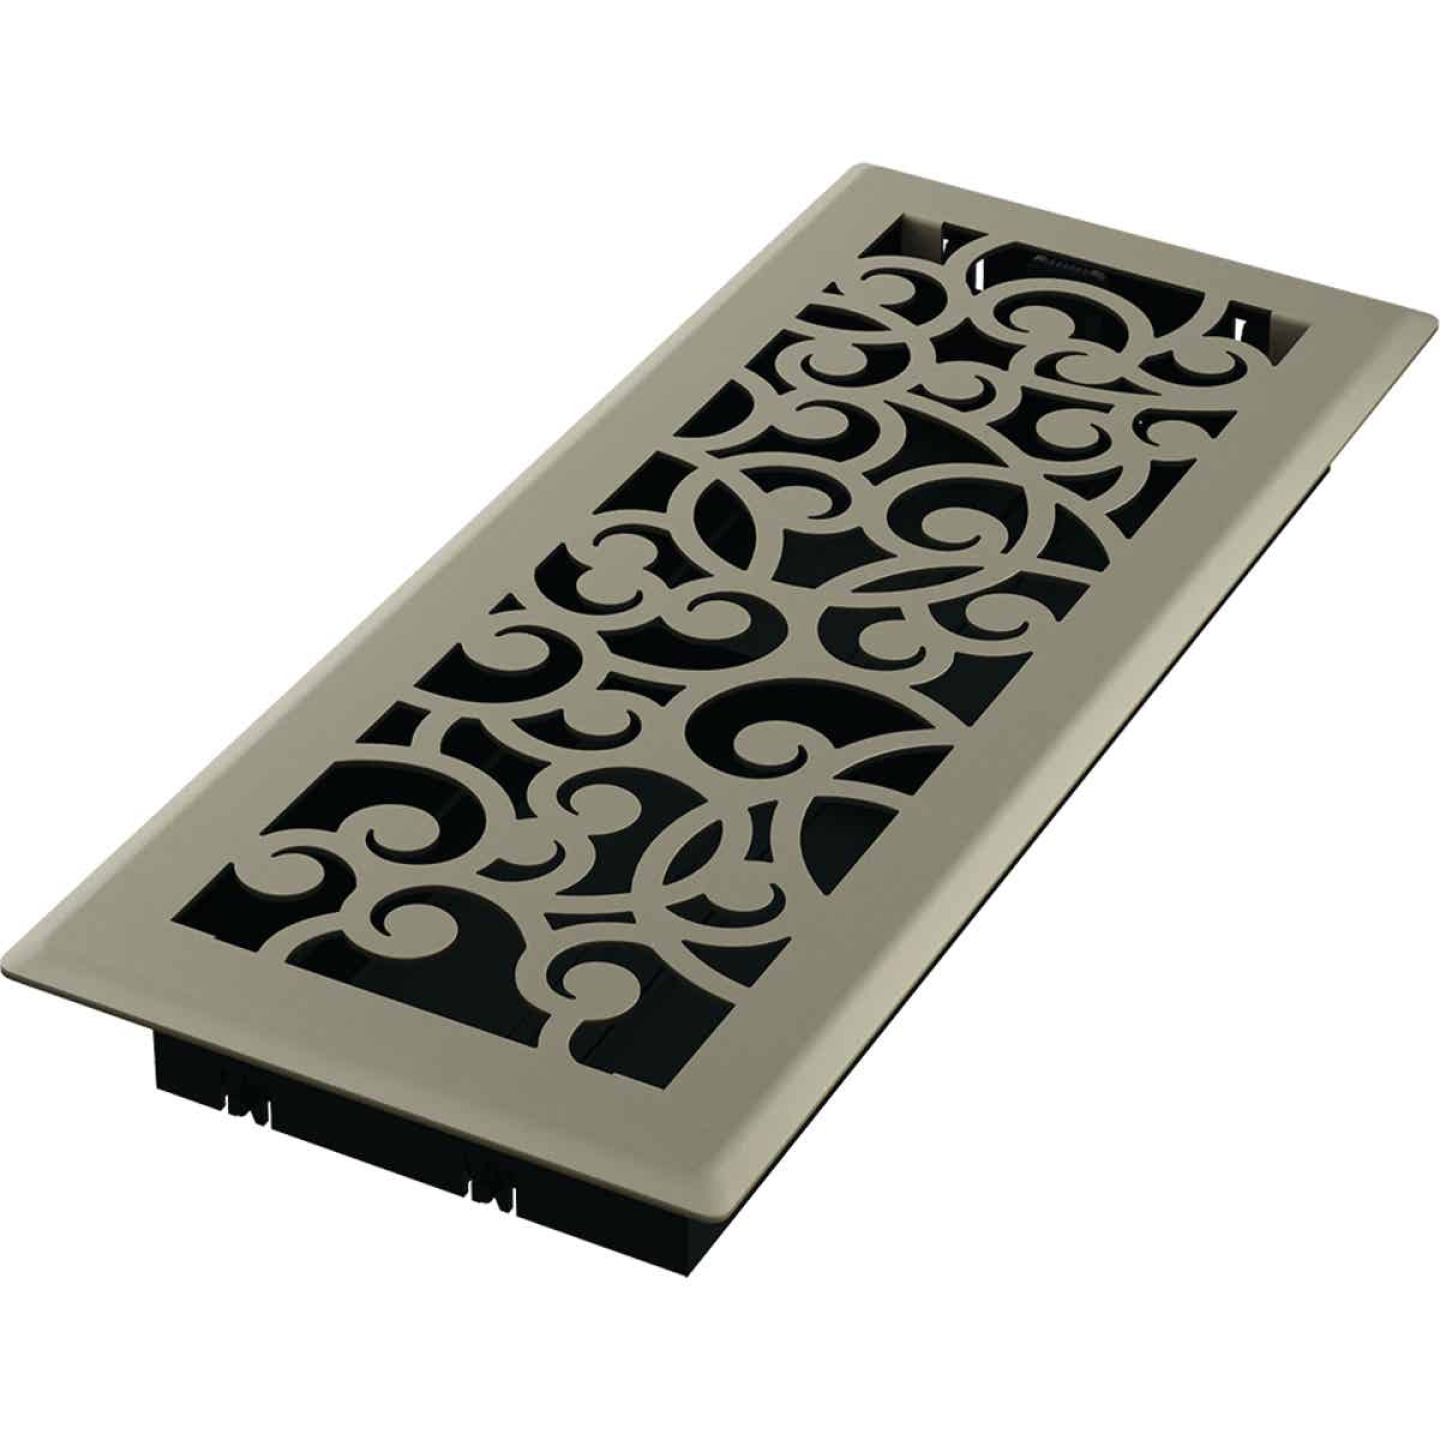 Imperial Wonderland 4 In. x 12 In. Satin Nickel Steel Floor Register Image 1